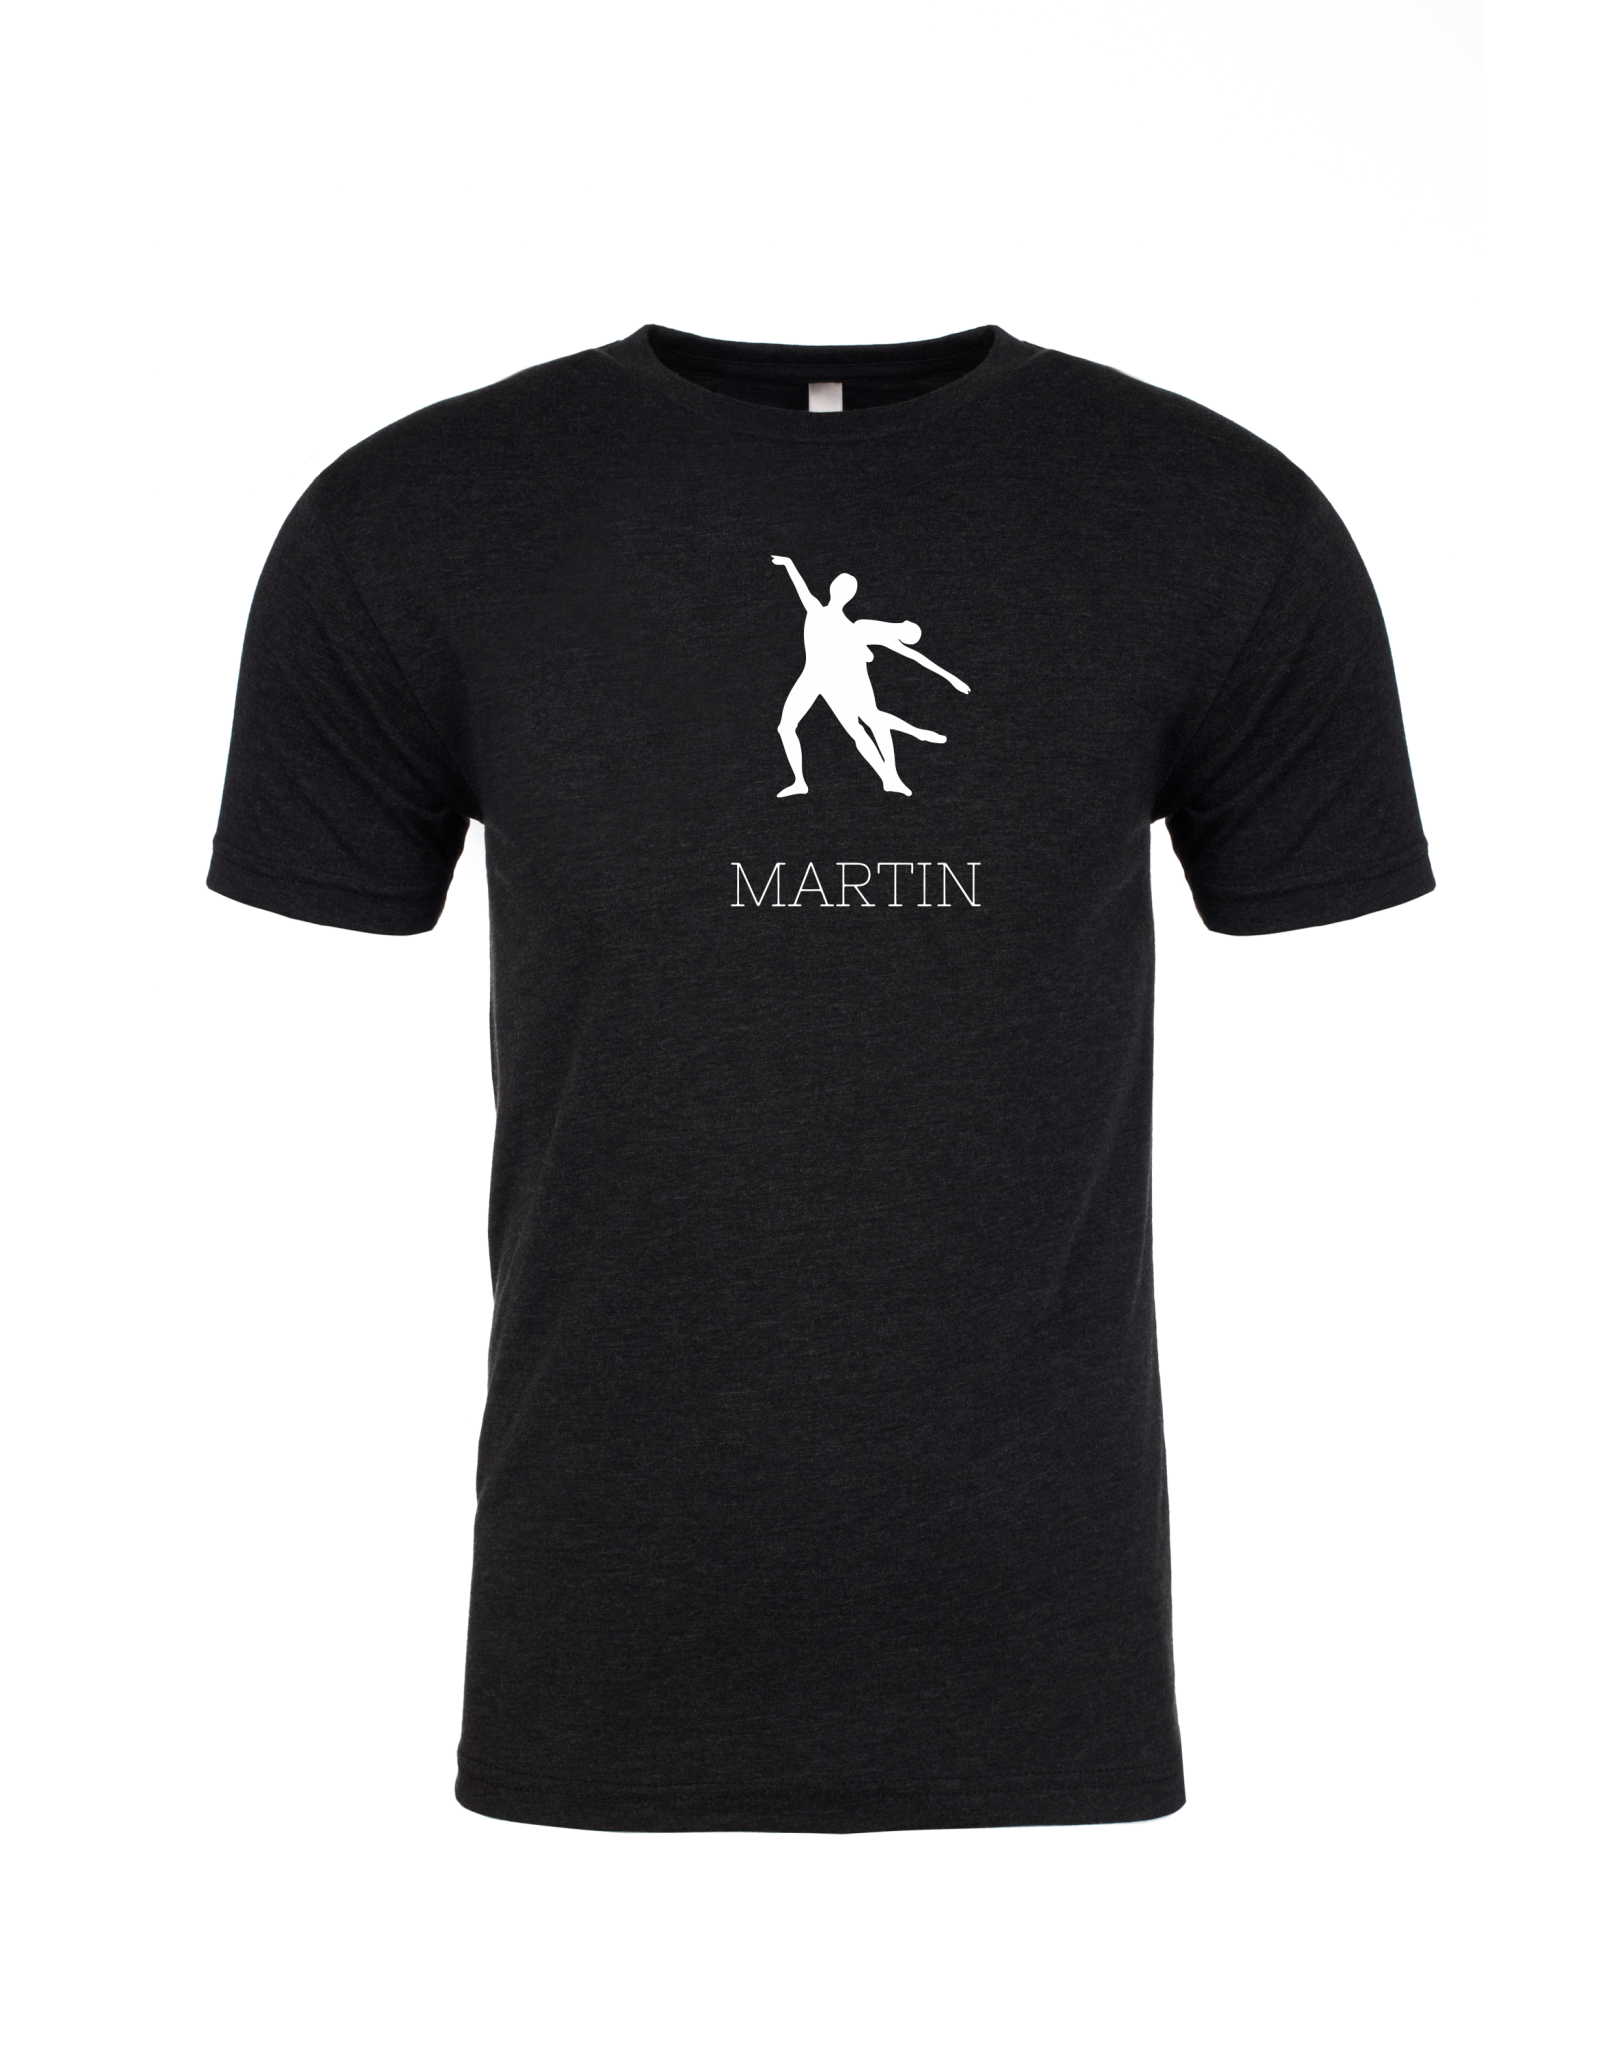 Next Level Apparel Martin T-shirt